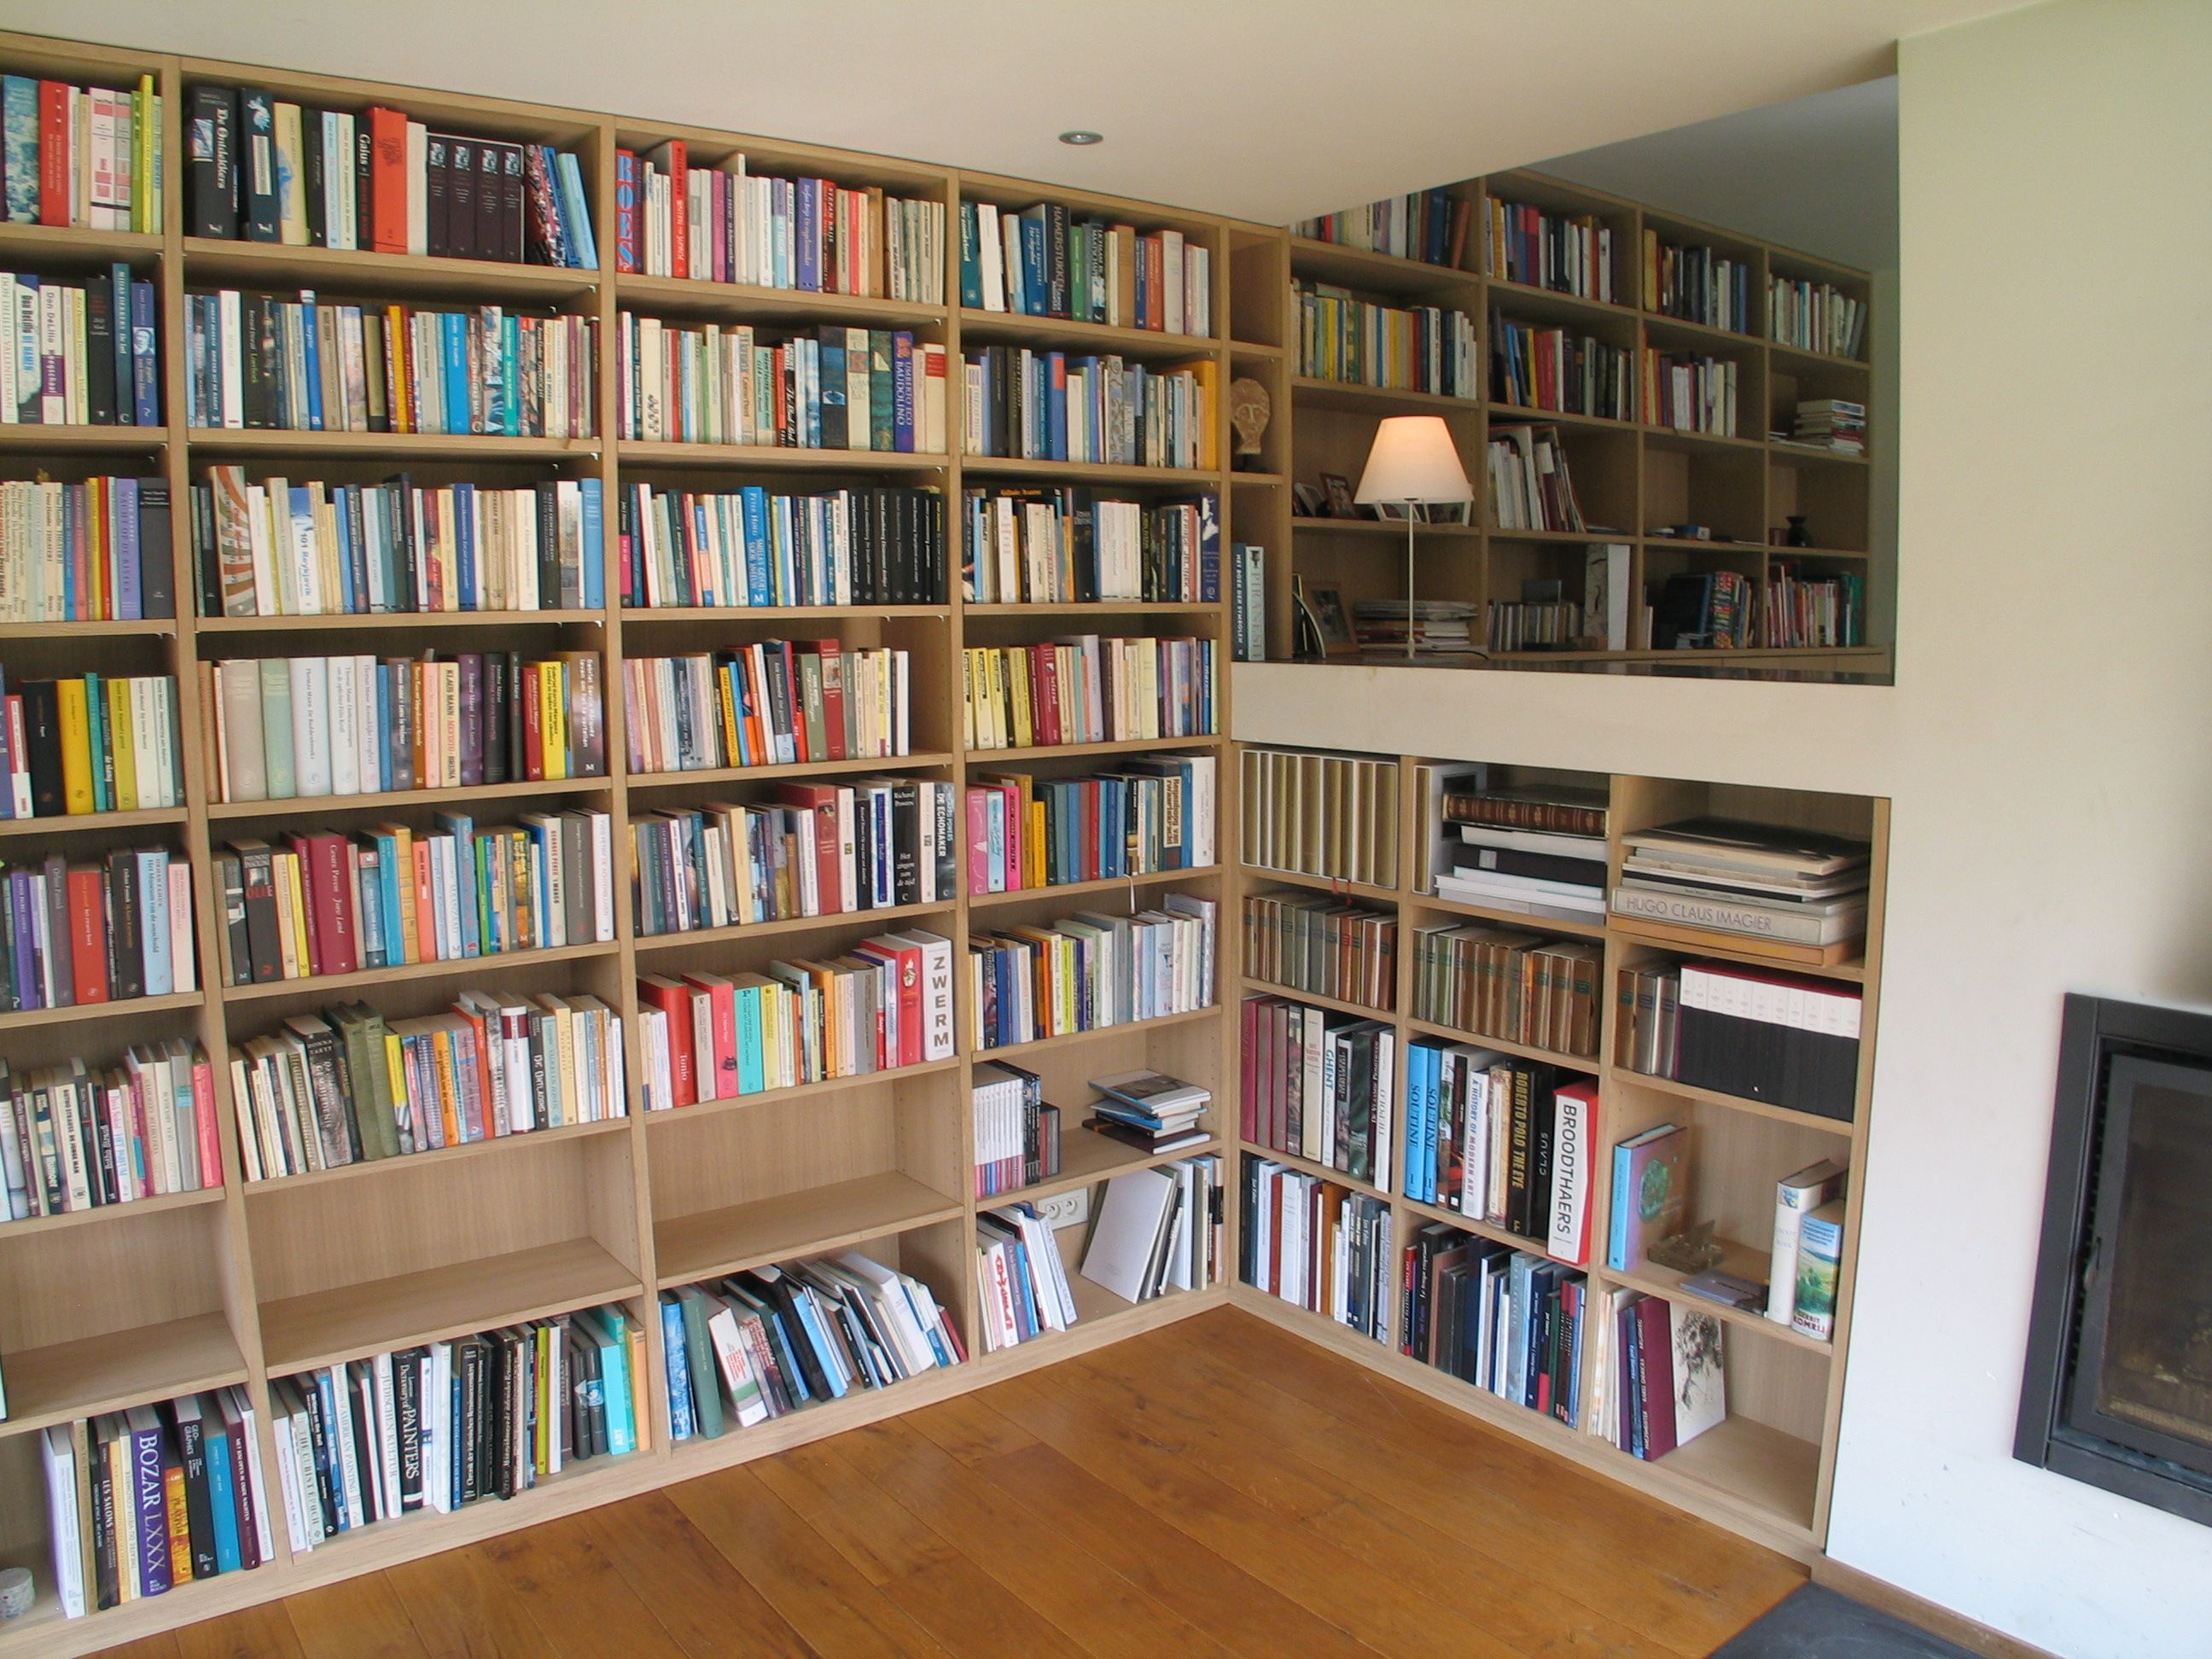 Cupboards frits kuitenbrouwer tailor made furniture page 2 - Muur bibliotheek ...